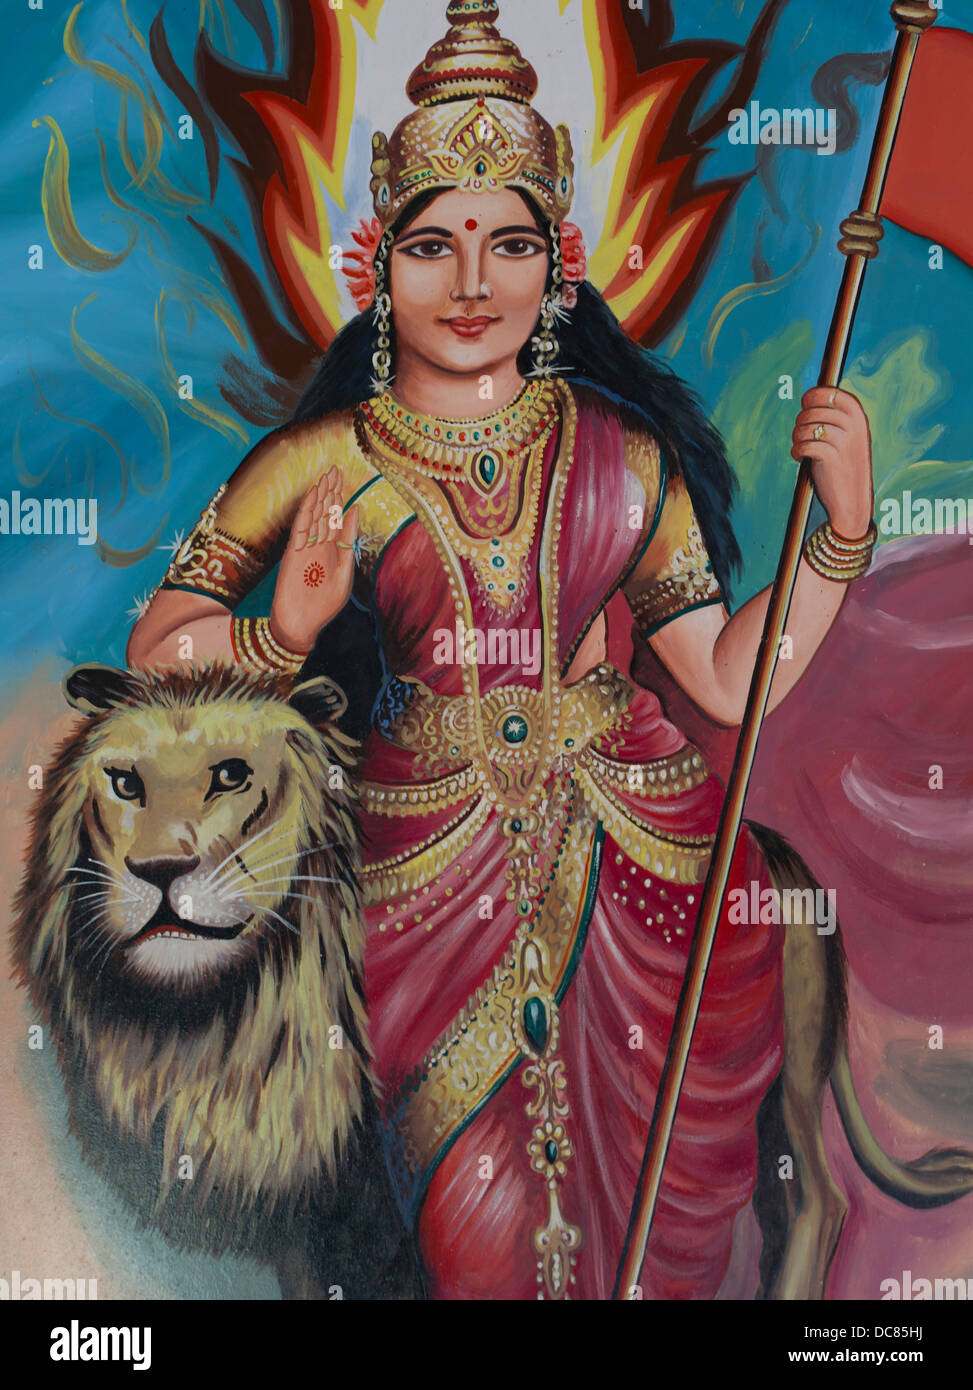 Goddess Durga / Shakthi painted mural on the buildings located on the banks of the Ganges River - Varanasi, Uttar - Stock Image